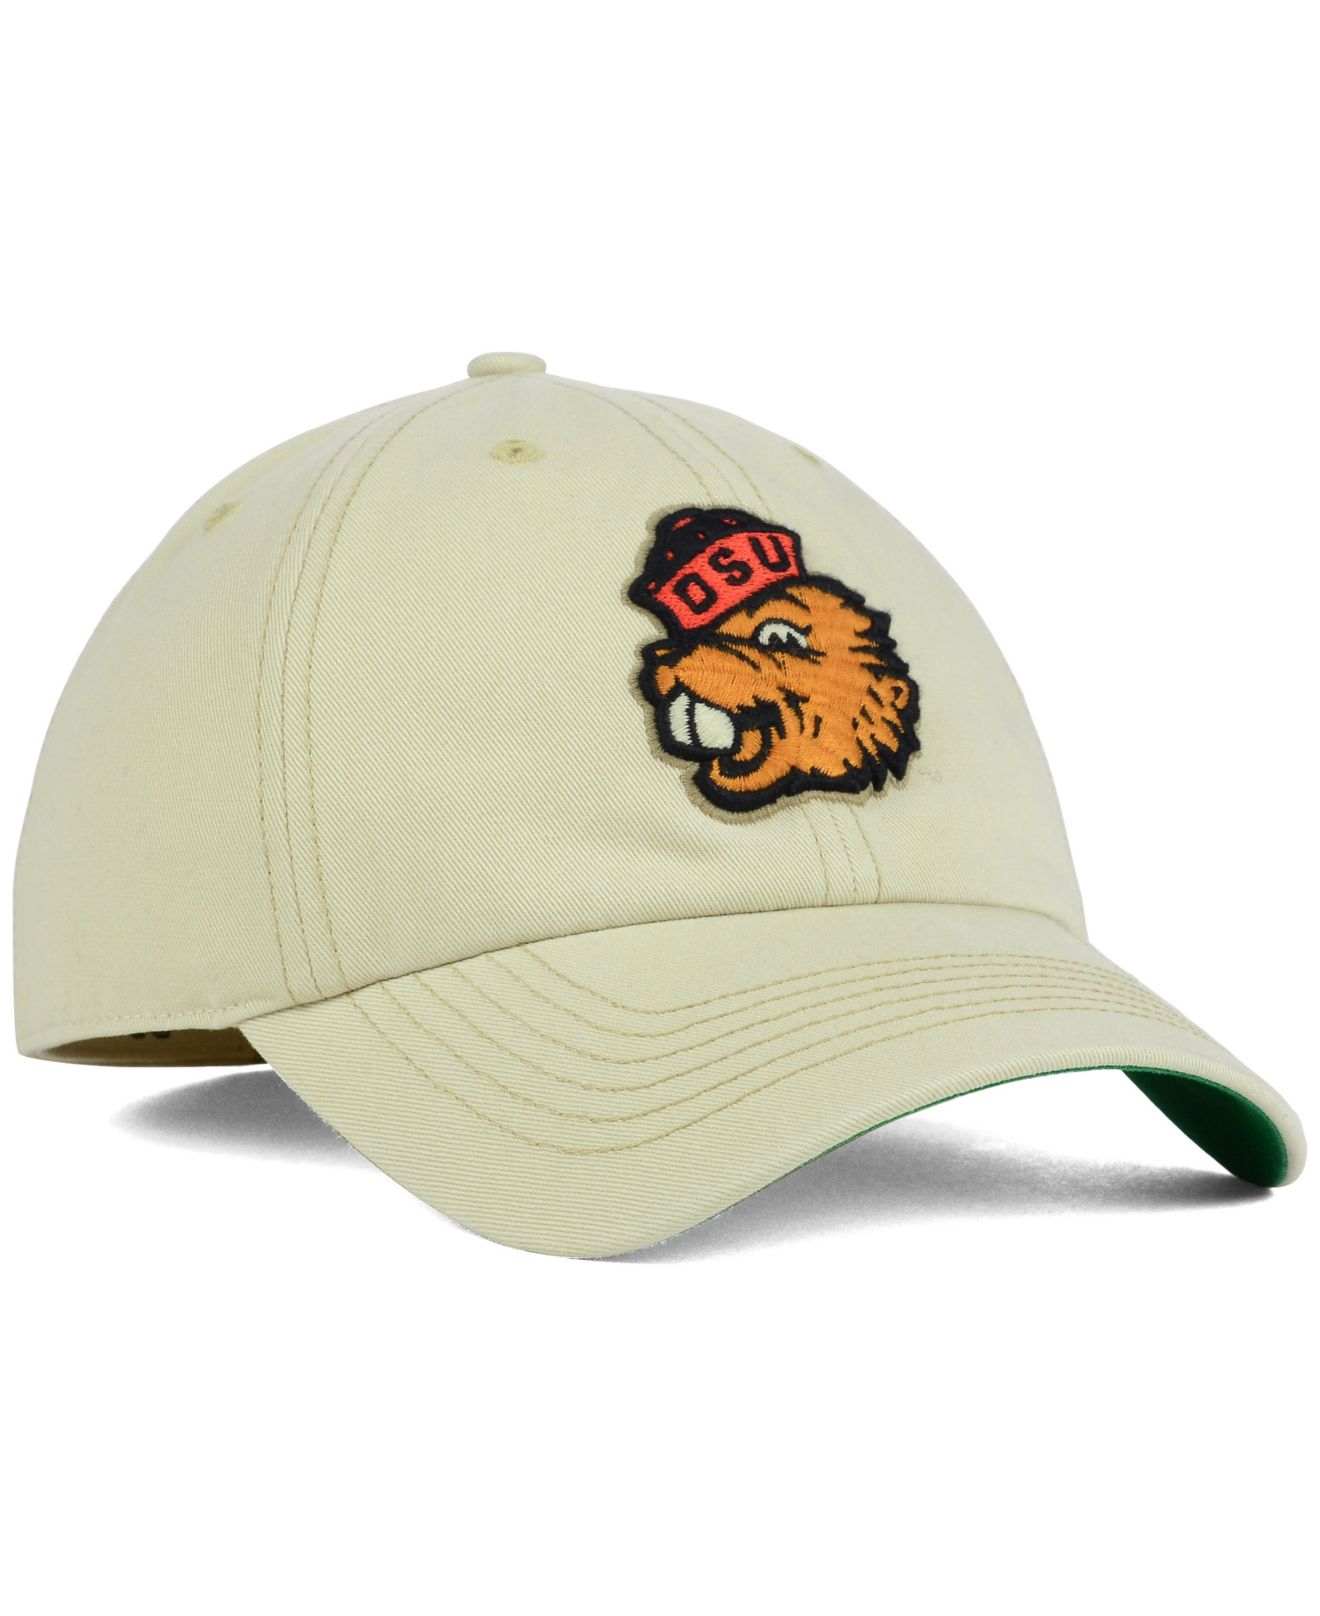 2b70d8f56b0 Lyst - 47 Brand Oregon State Beavers Franchise Cap in Natural for Men